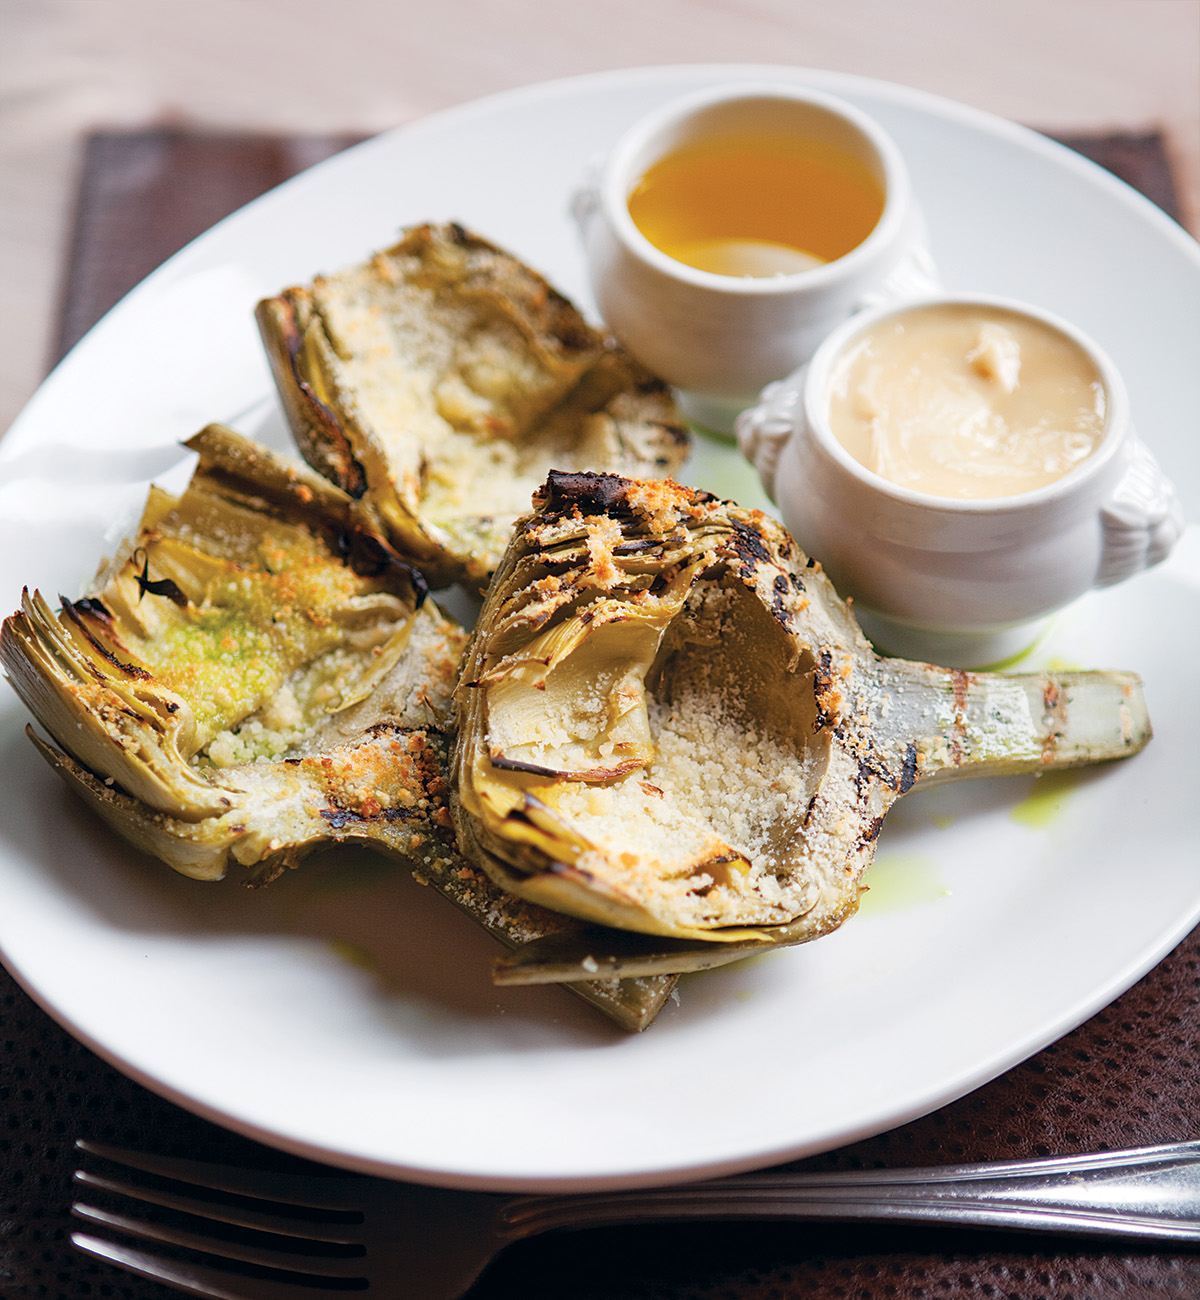 Jumbo grilled artichokes with roasted garlic aioli, $12. Photograph by Keller + Keller.